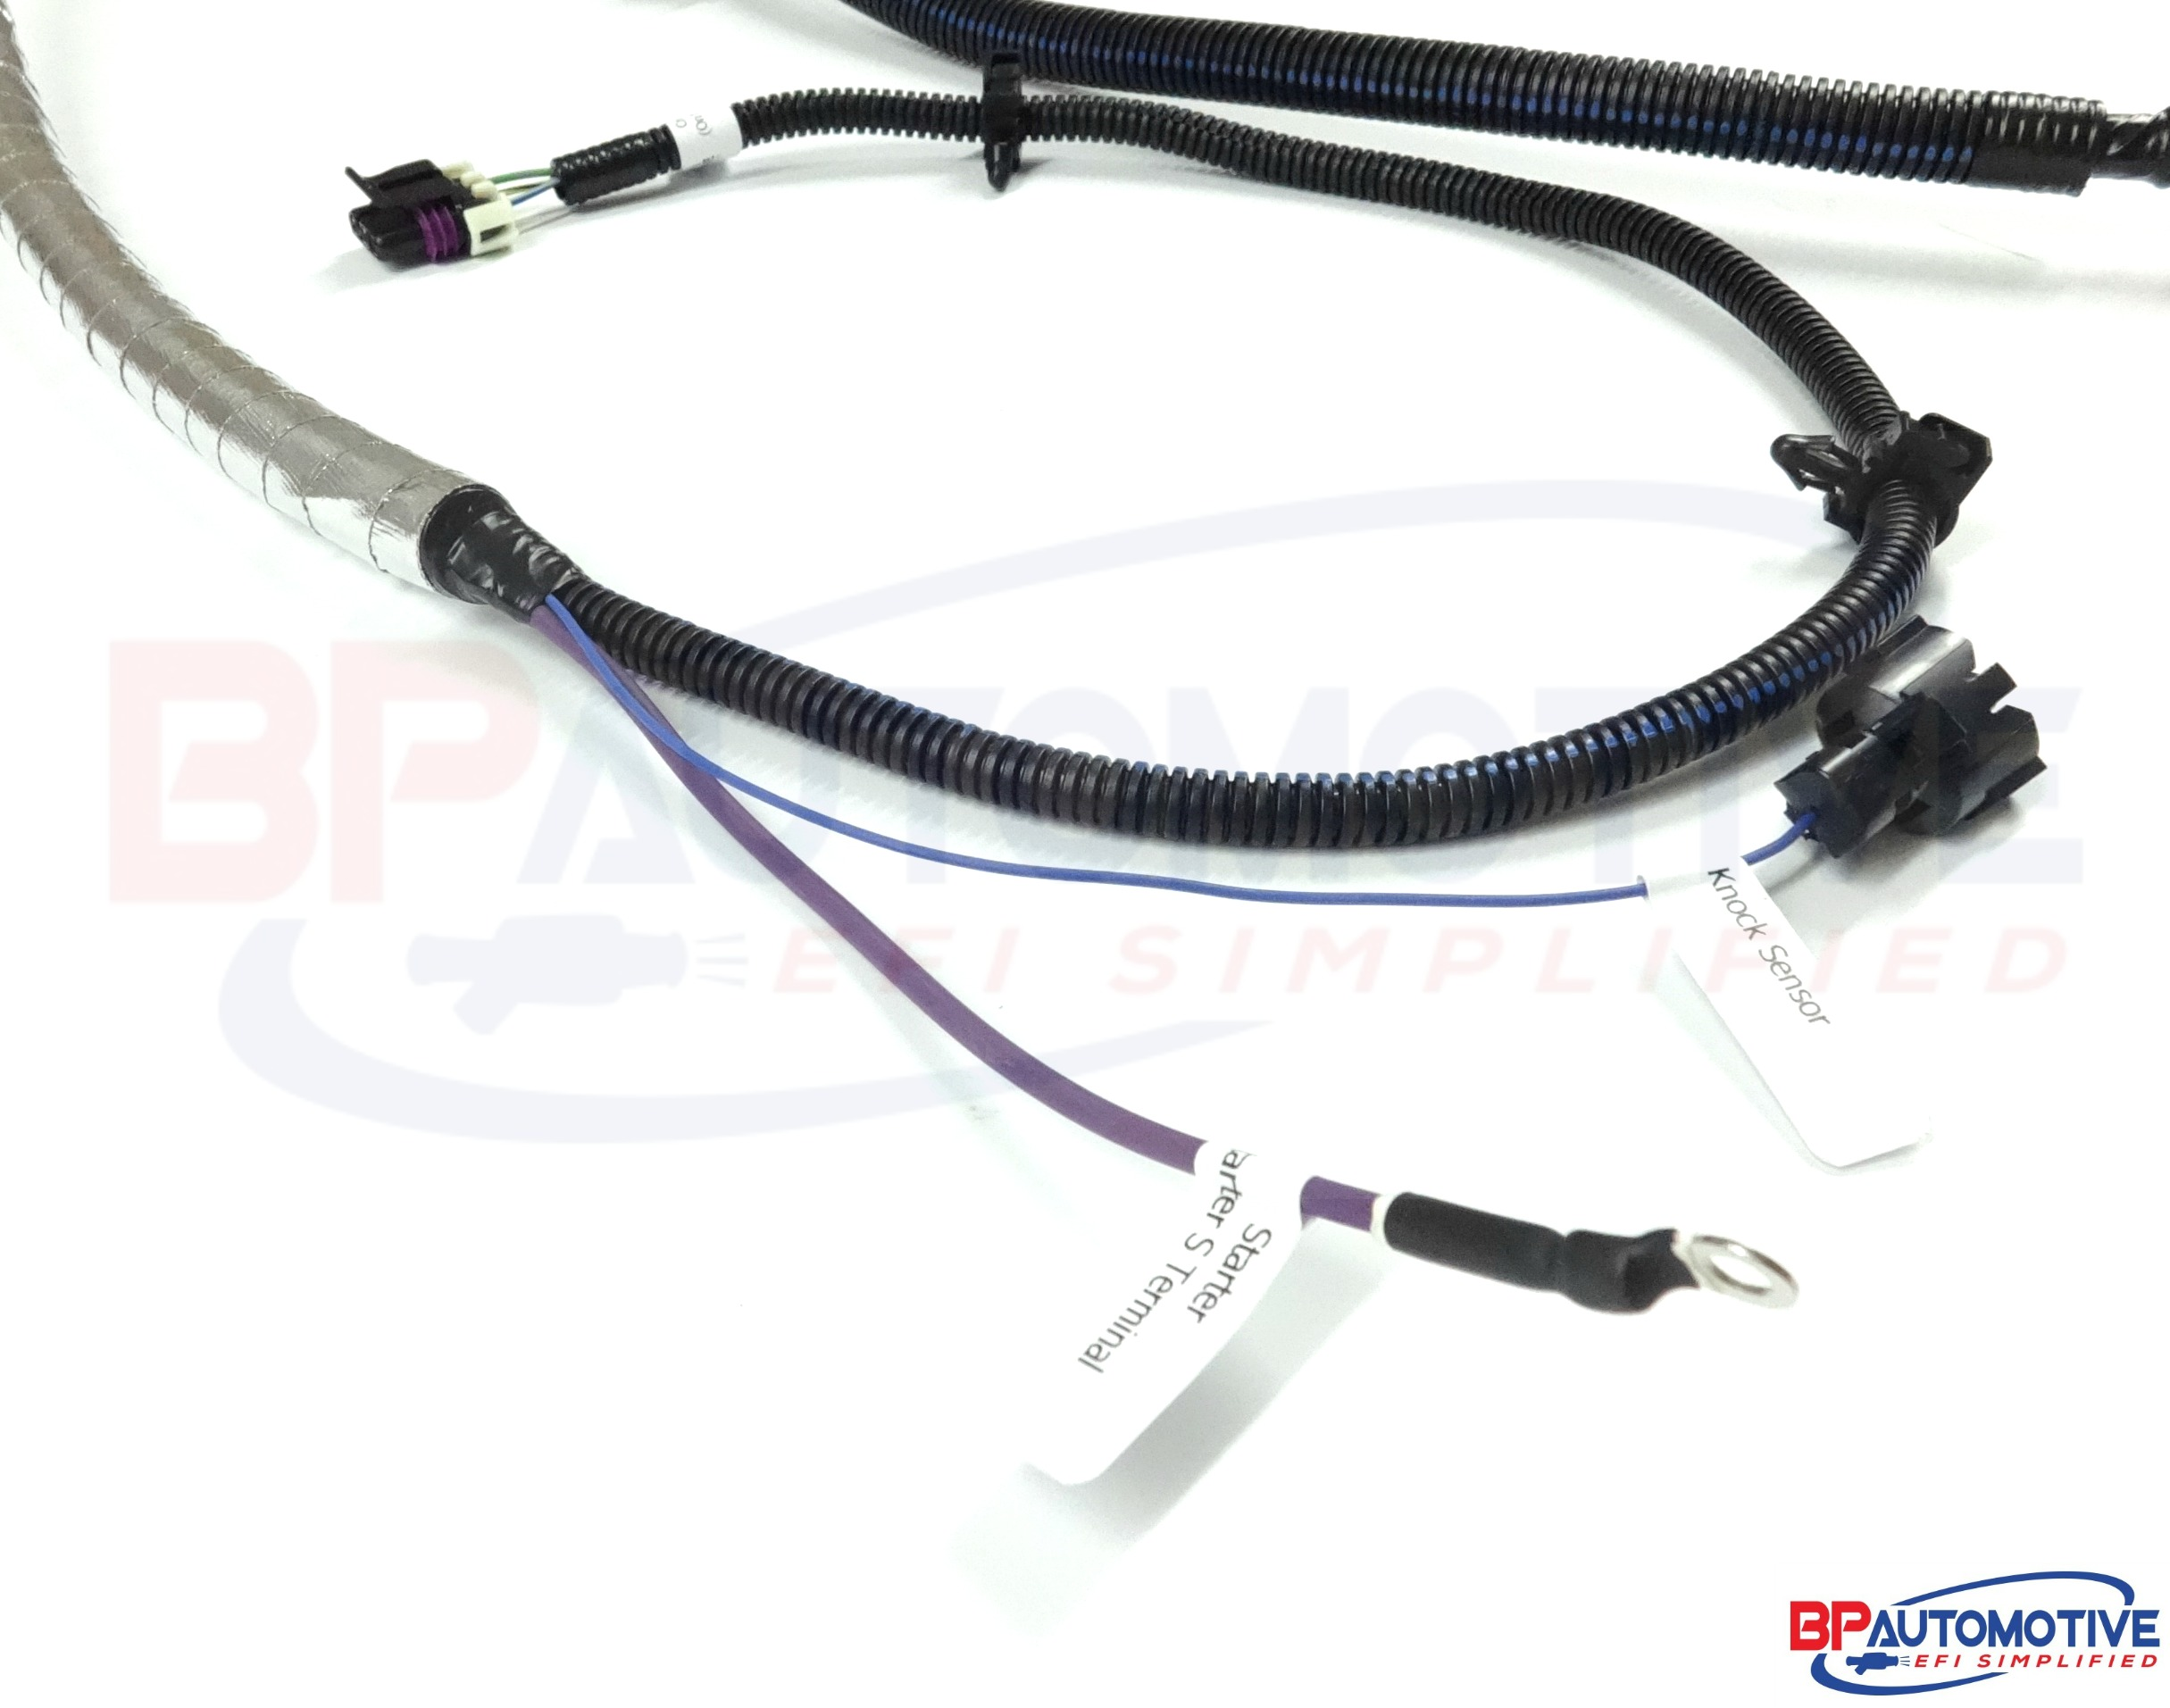 24x lt1 wiring harness 96 lt1 wiring harness 1995 lt1 f-body plug and play 24x conversion harness with ...